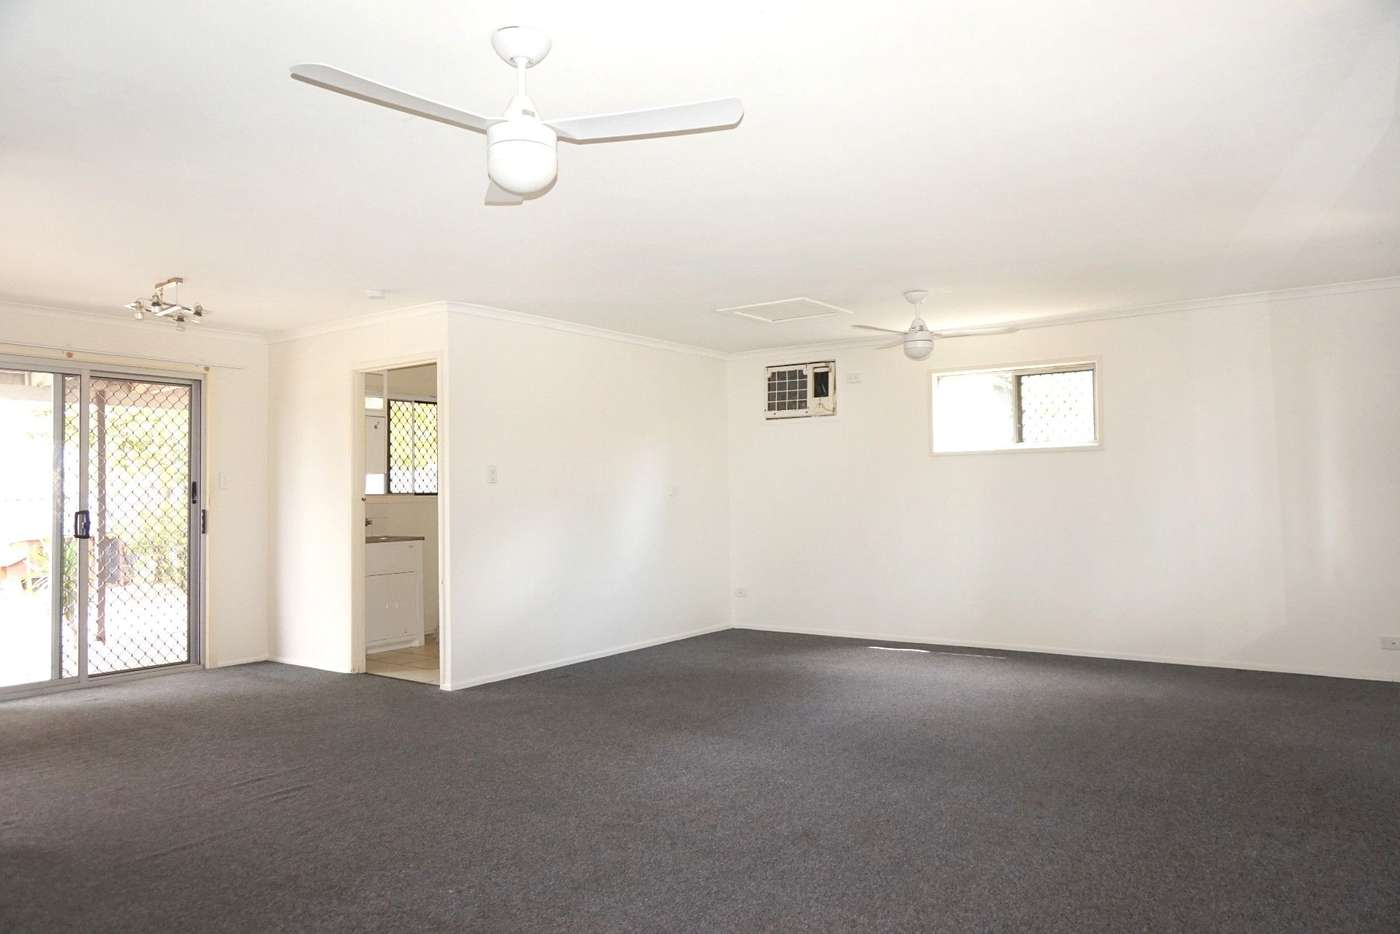 Main view of Homely house listing, 44 Hickory Street, Marsden QLD 4132